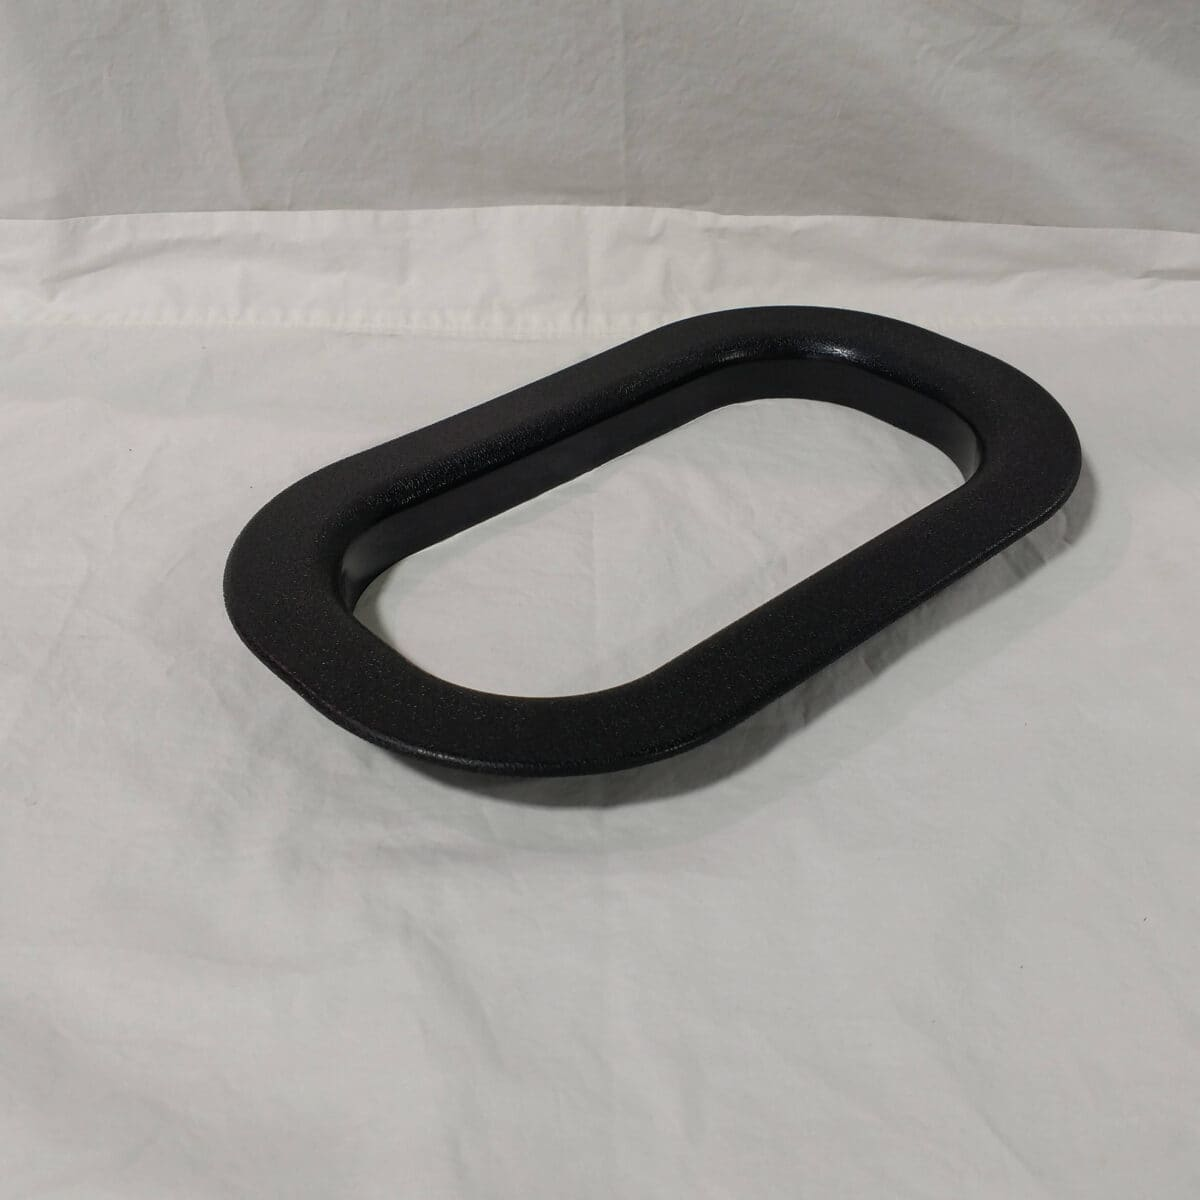 High Profile Popup Vent Trim Ring Plastic 1 00 Depth